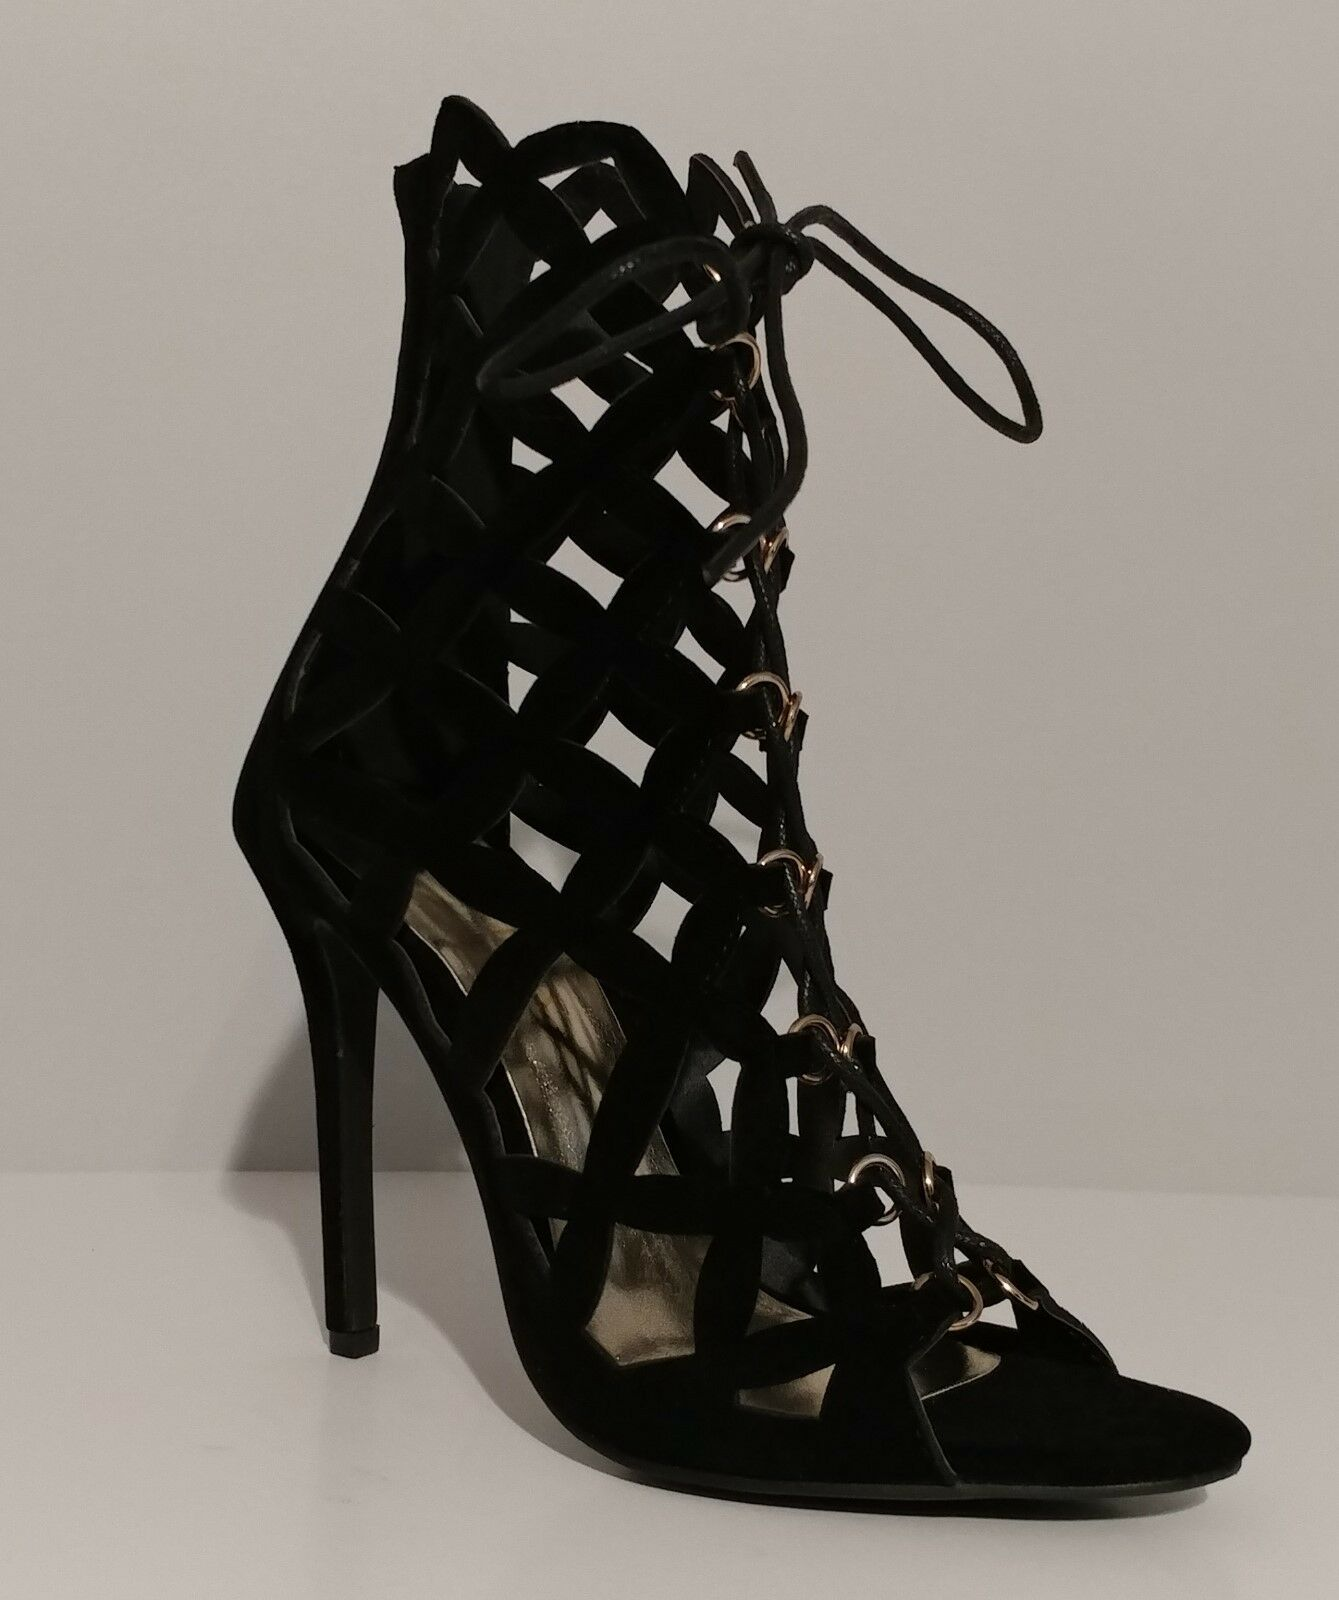 NEW   Liliana Zia-4  Black Lace Up Caged 4  Heels Size 7M US 37M EUR